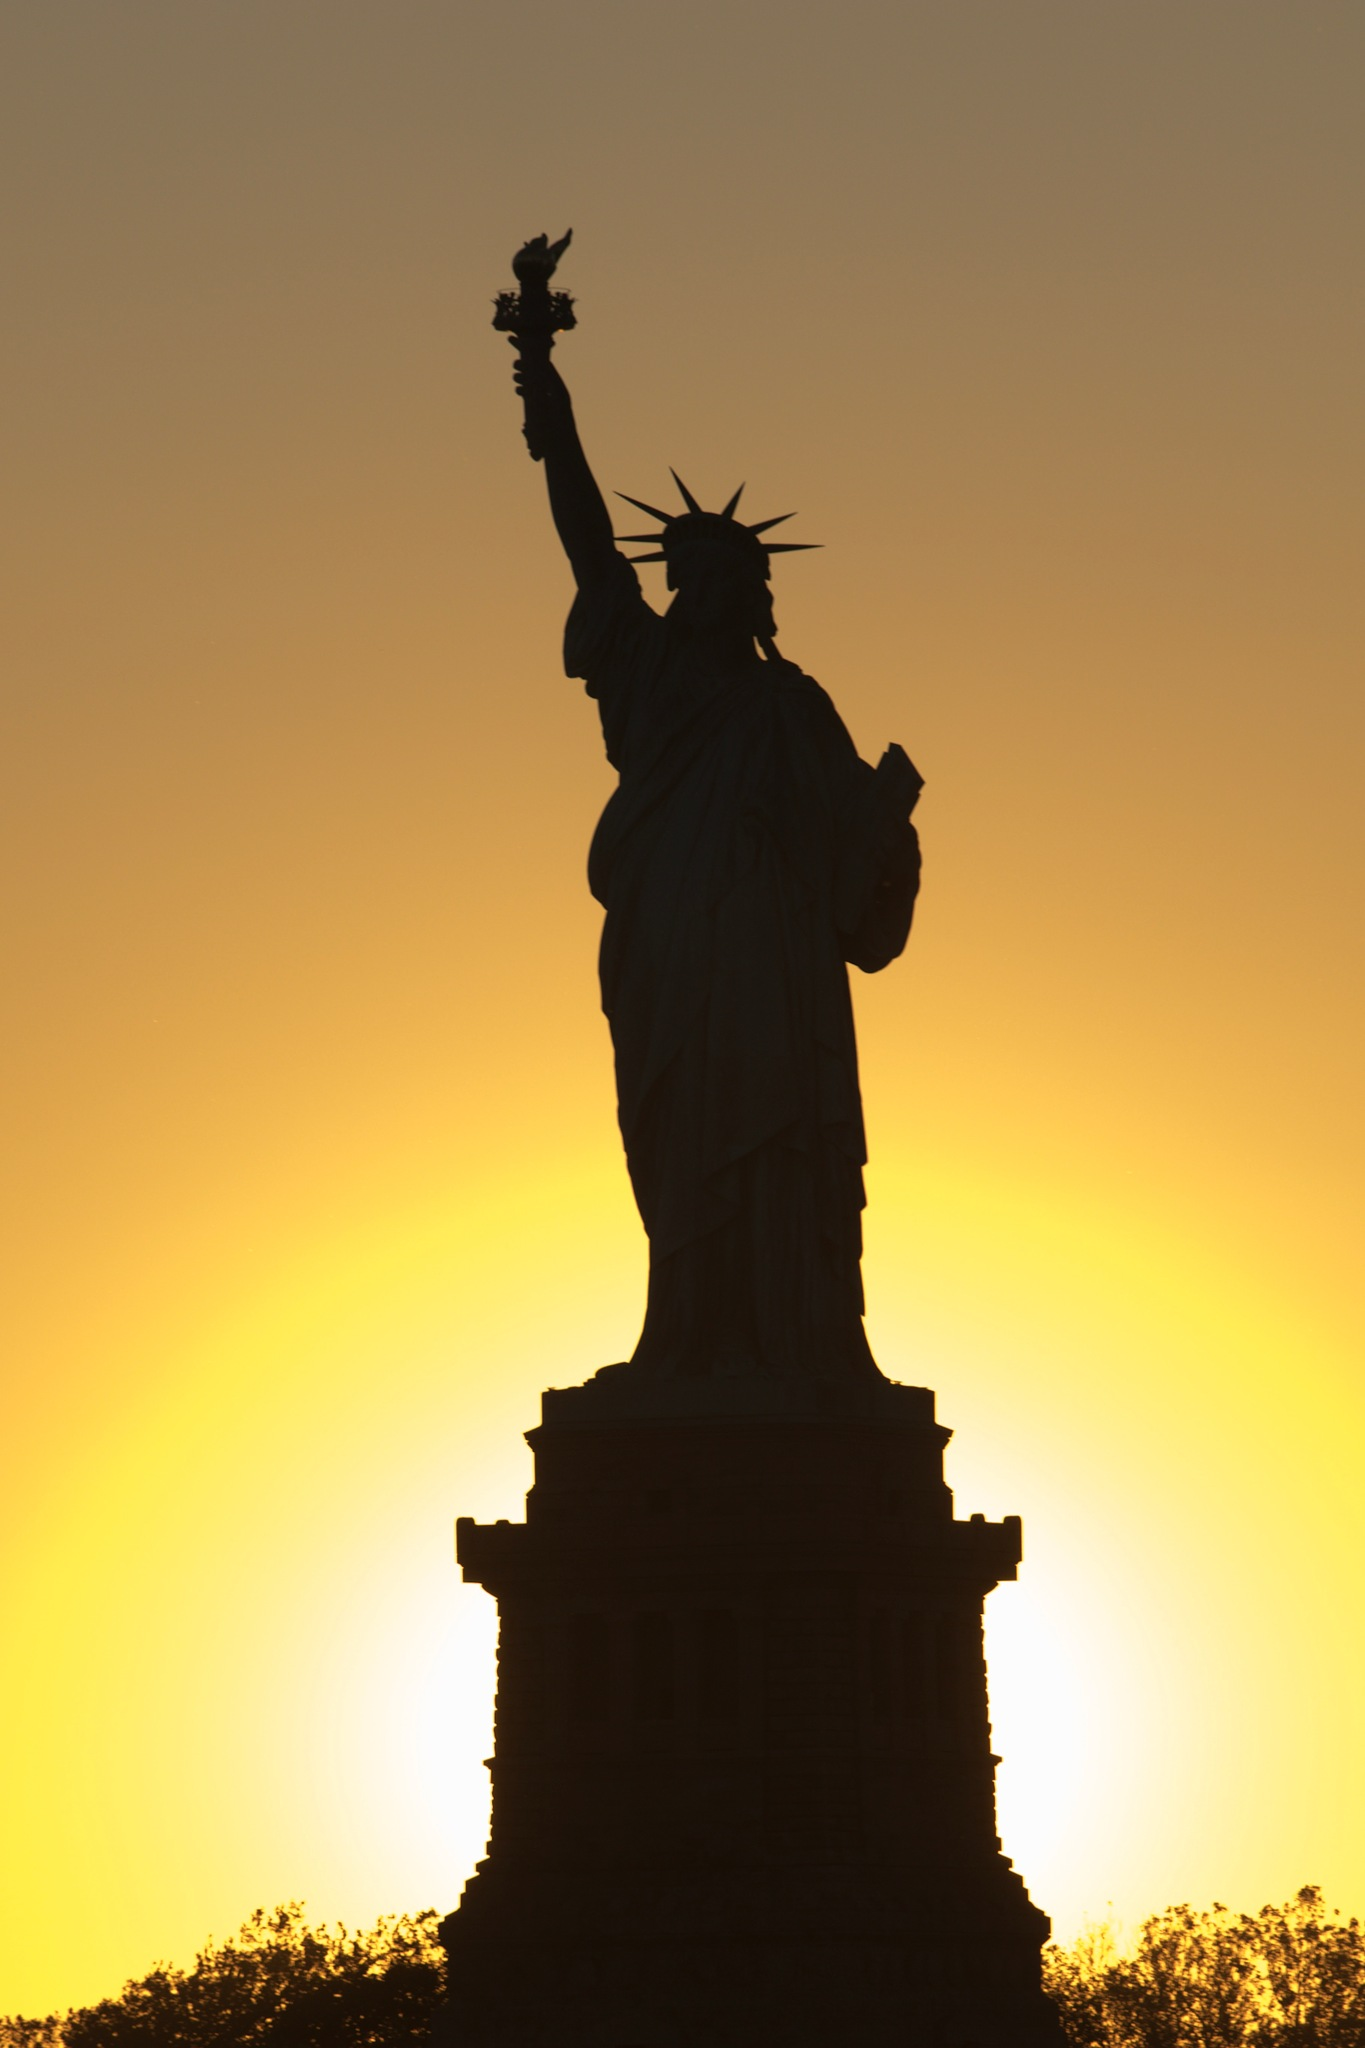 Sun Setting on Lady Liberty by James Eaton